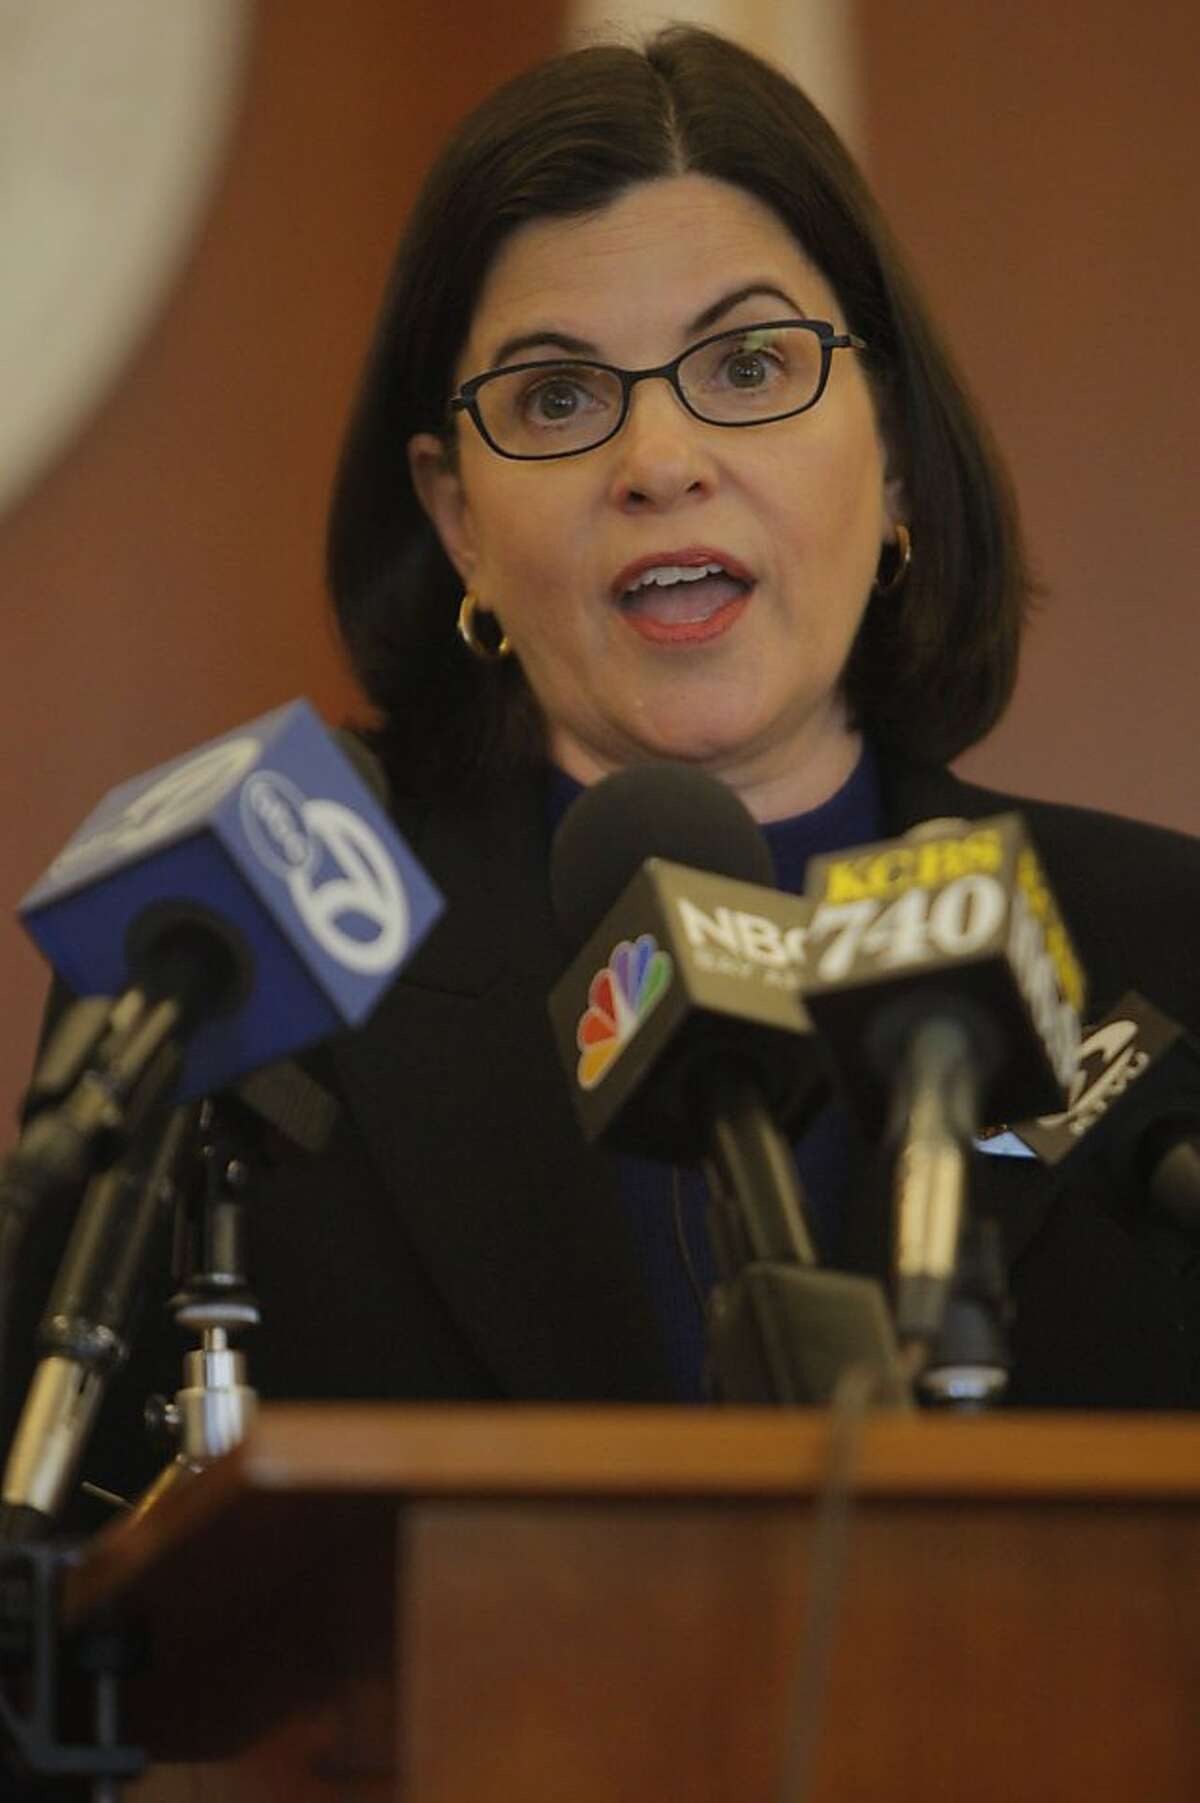 Judge of San Francisco Superior Court Katherine Feinstein held a press conference on Monday, July 18, 2011 in San Francisco Calif., to discuss the budget cuts made to the courts in San Francisco.